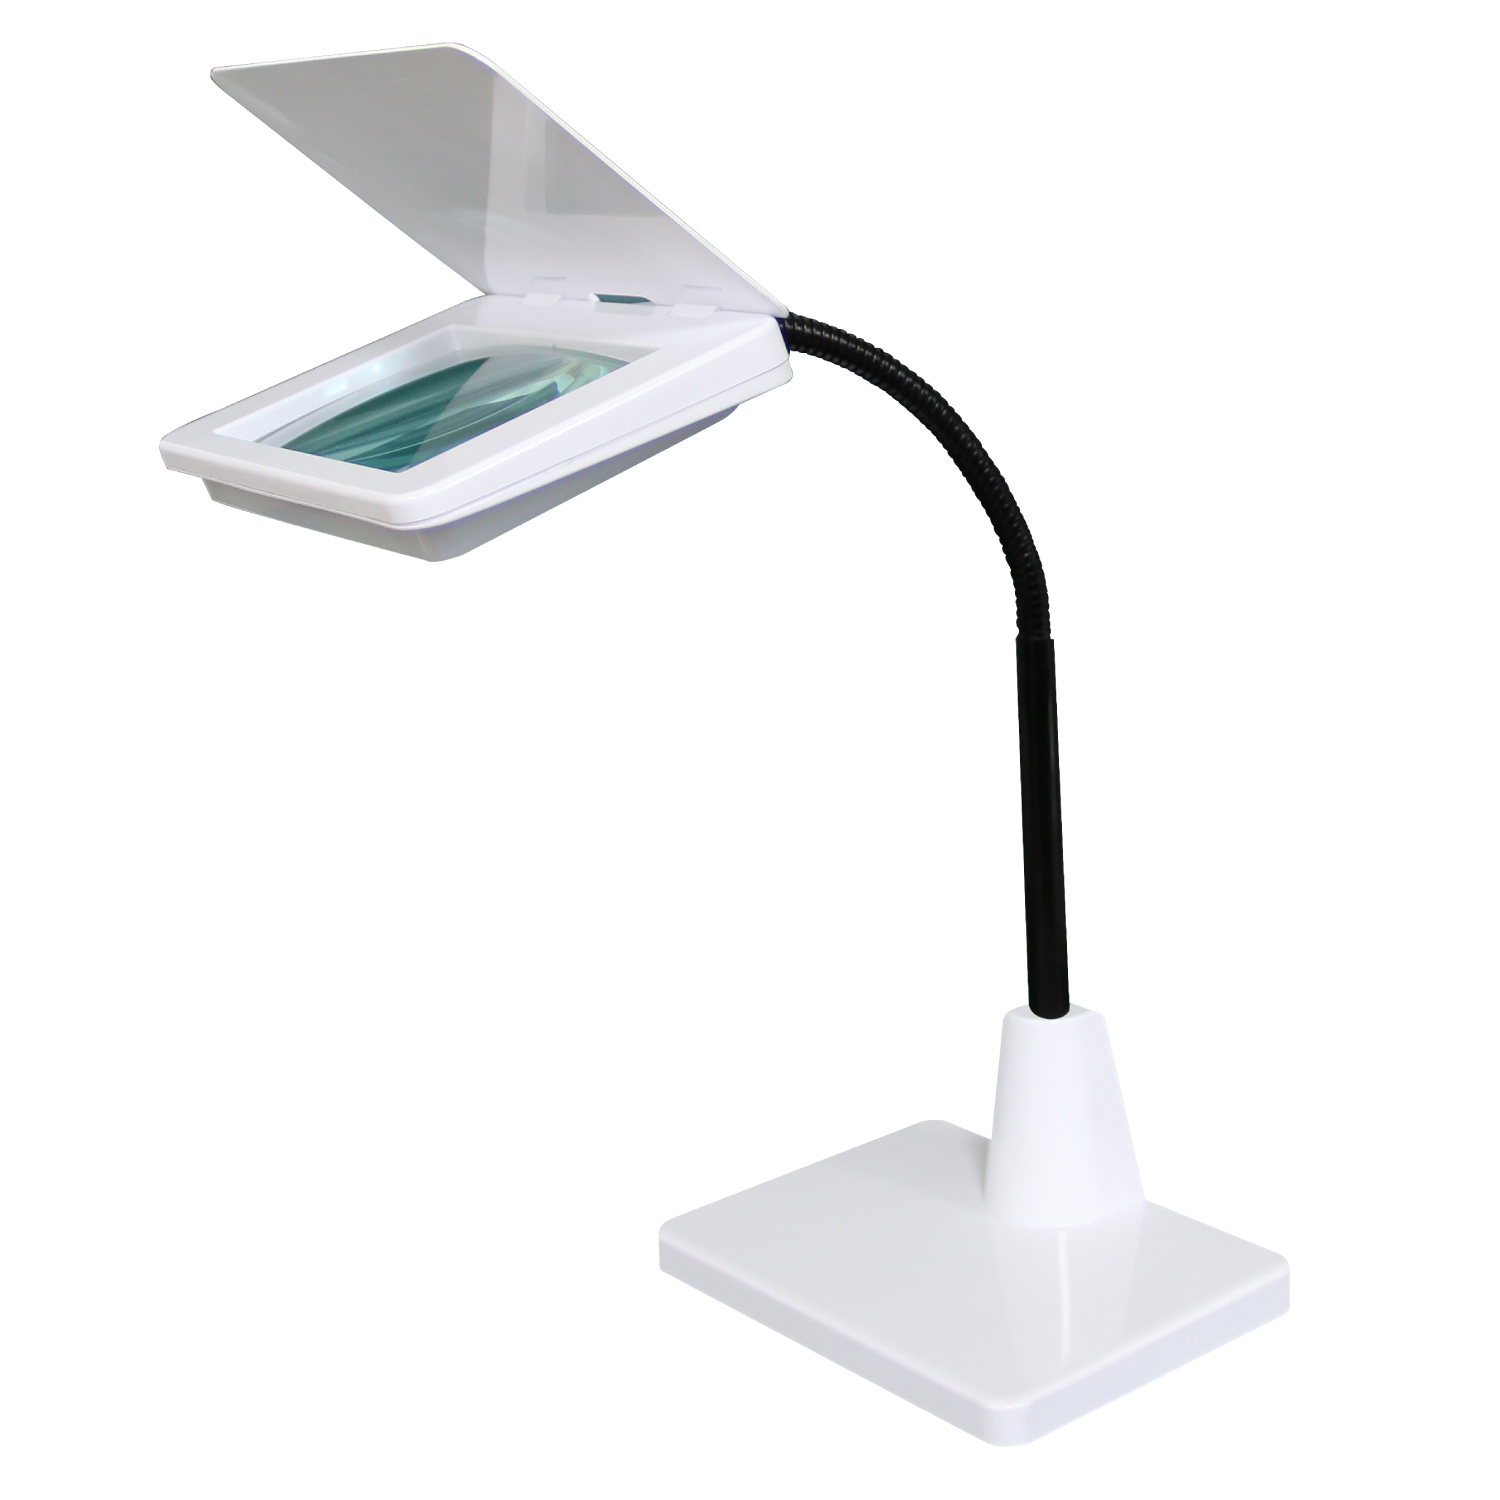 Po workers pro 'skit desk MA-1006F 1.75X 3d magnifying lamp 30 led lights